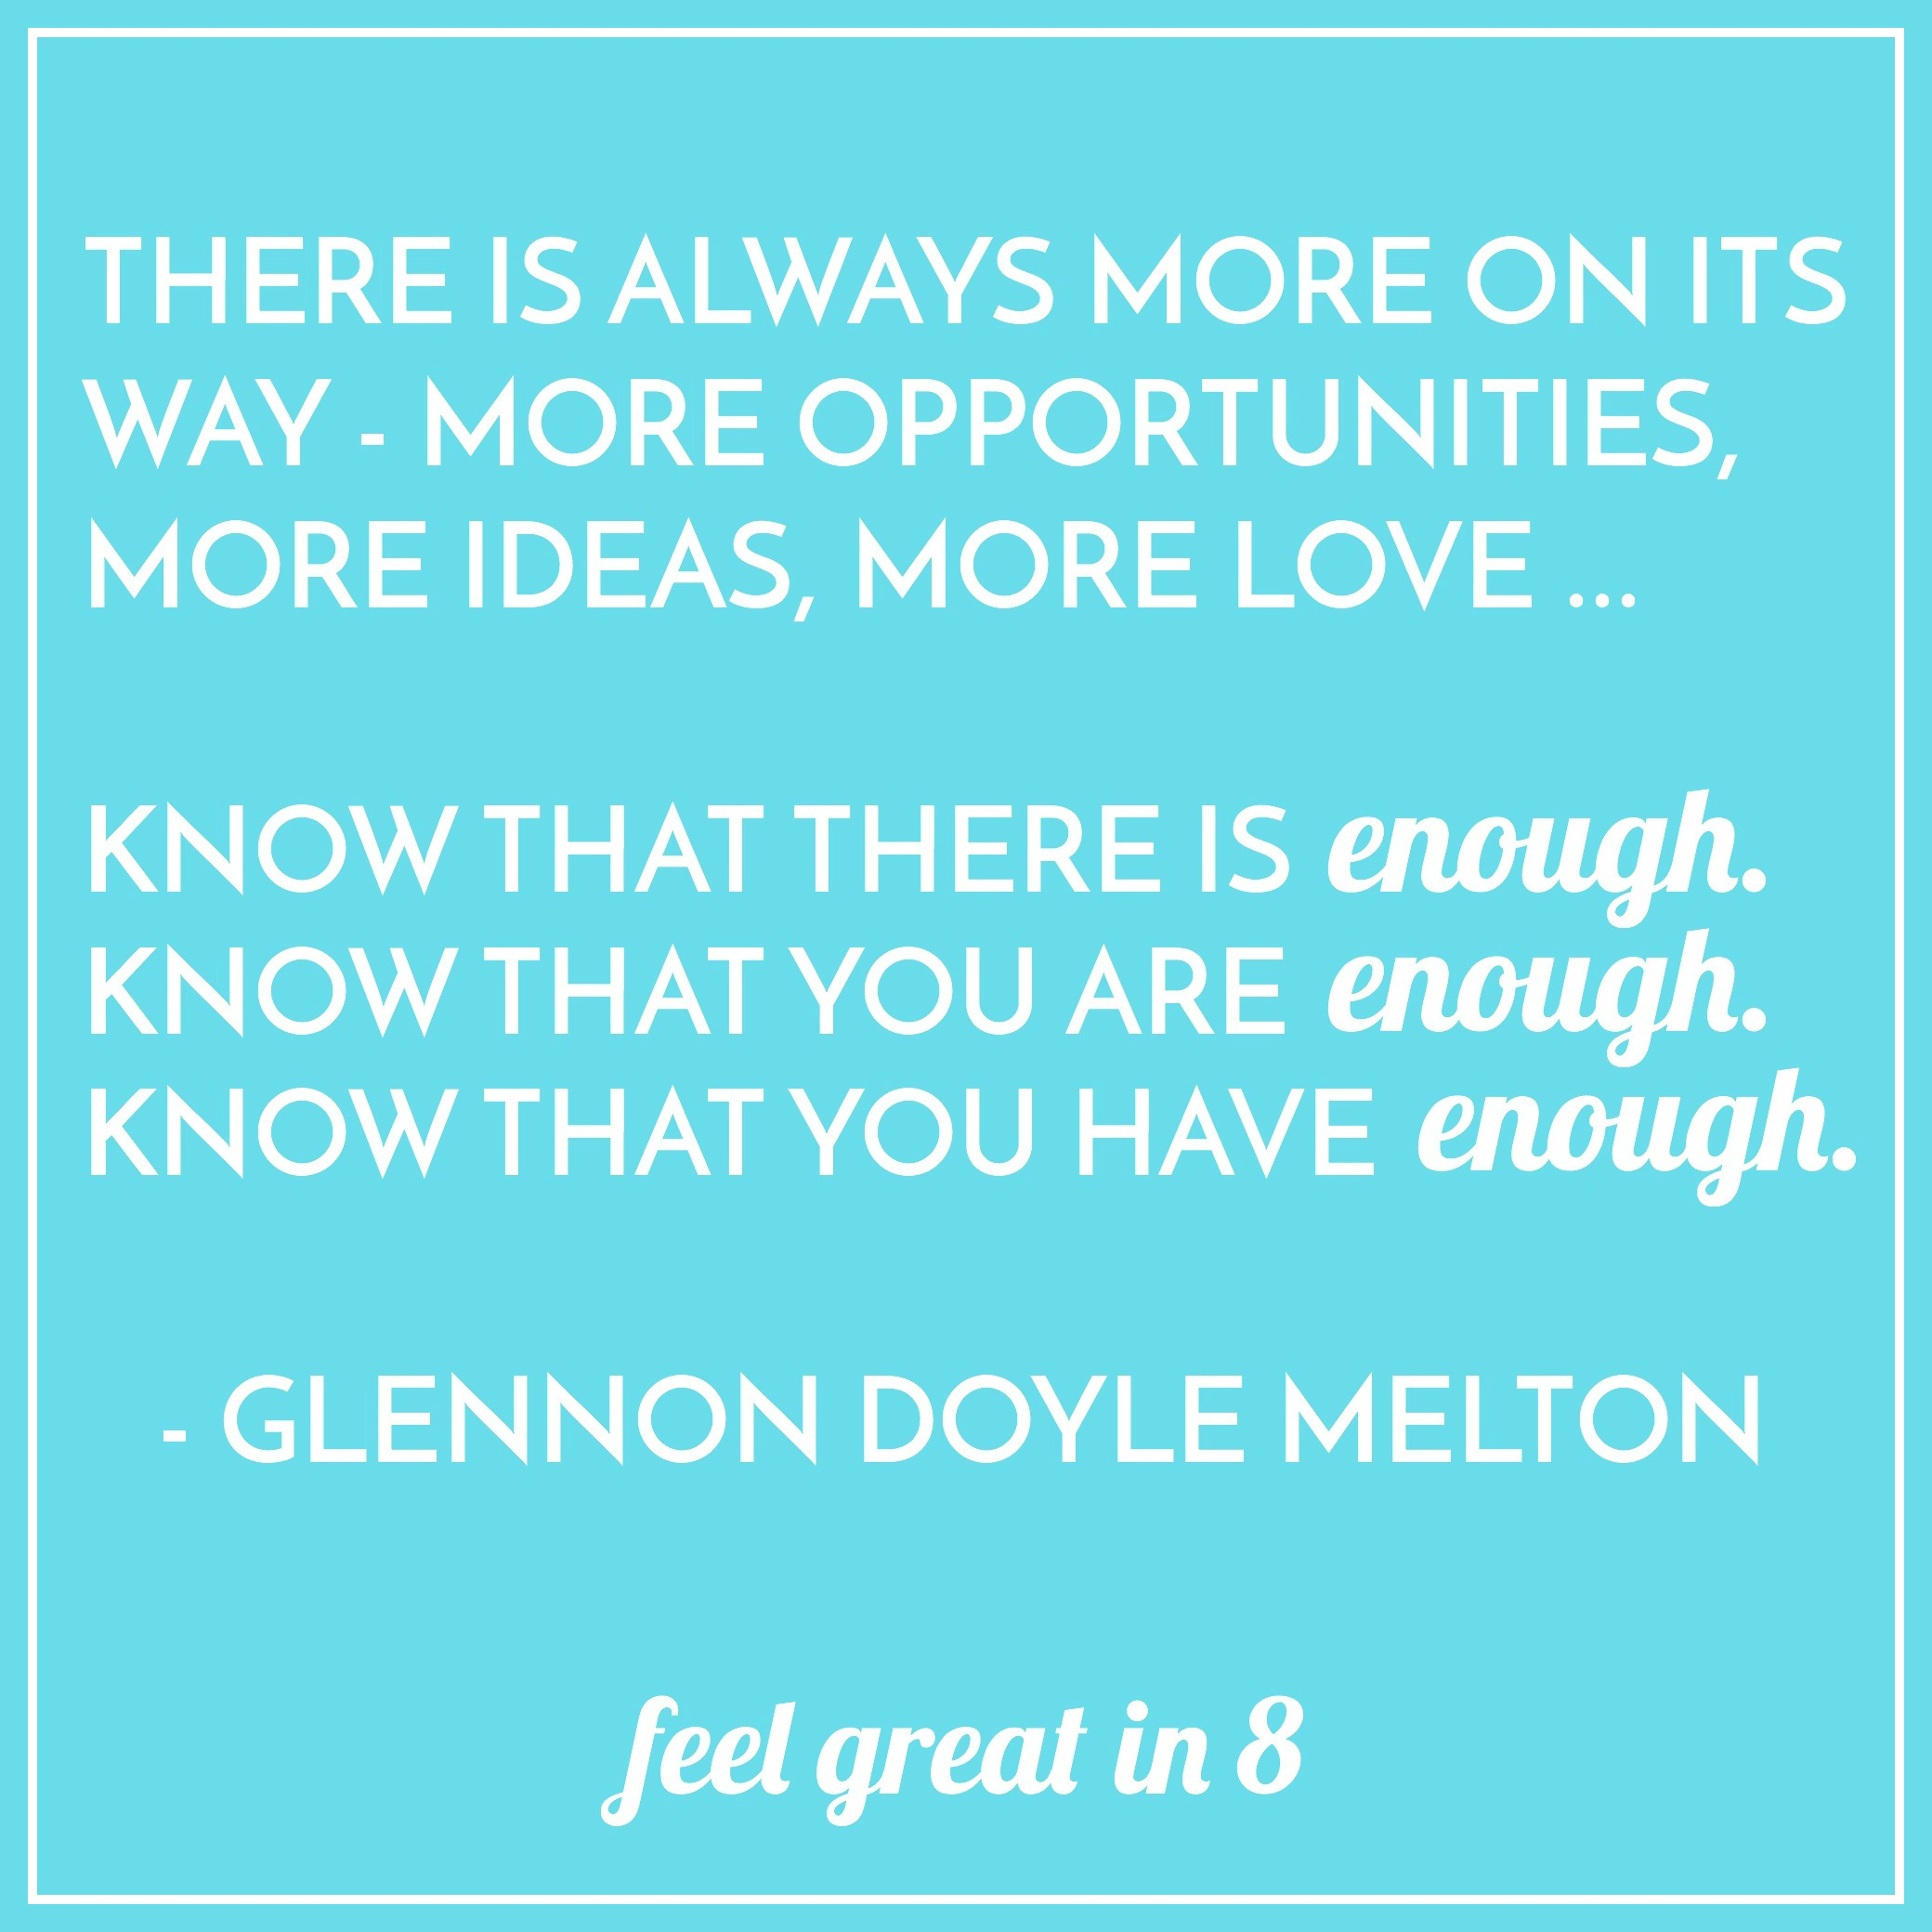 Glennon Doyle Melton Quotes Glennon Doyle Melton Quotes Simple Best 25 Glennon Doyle Melton